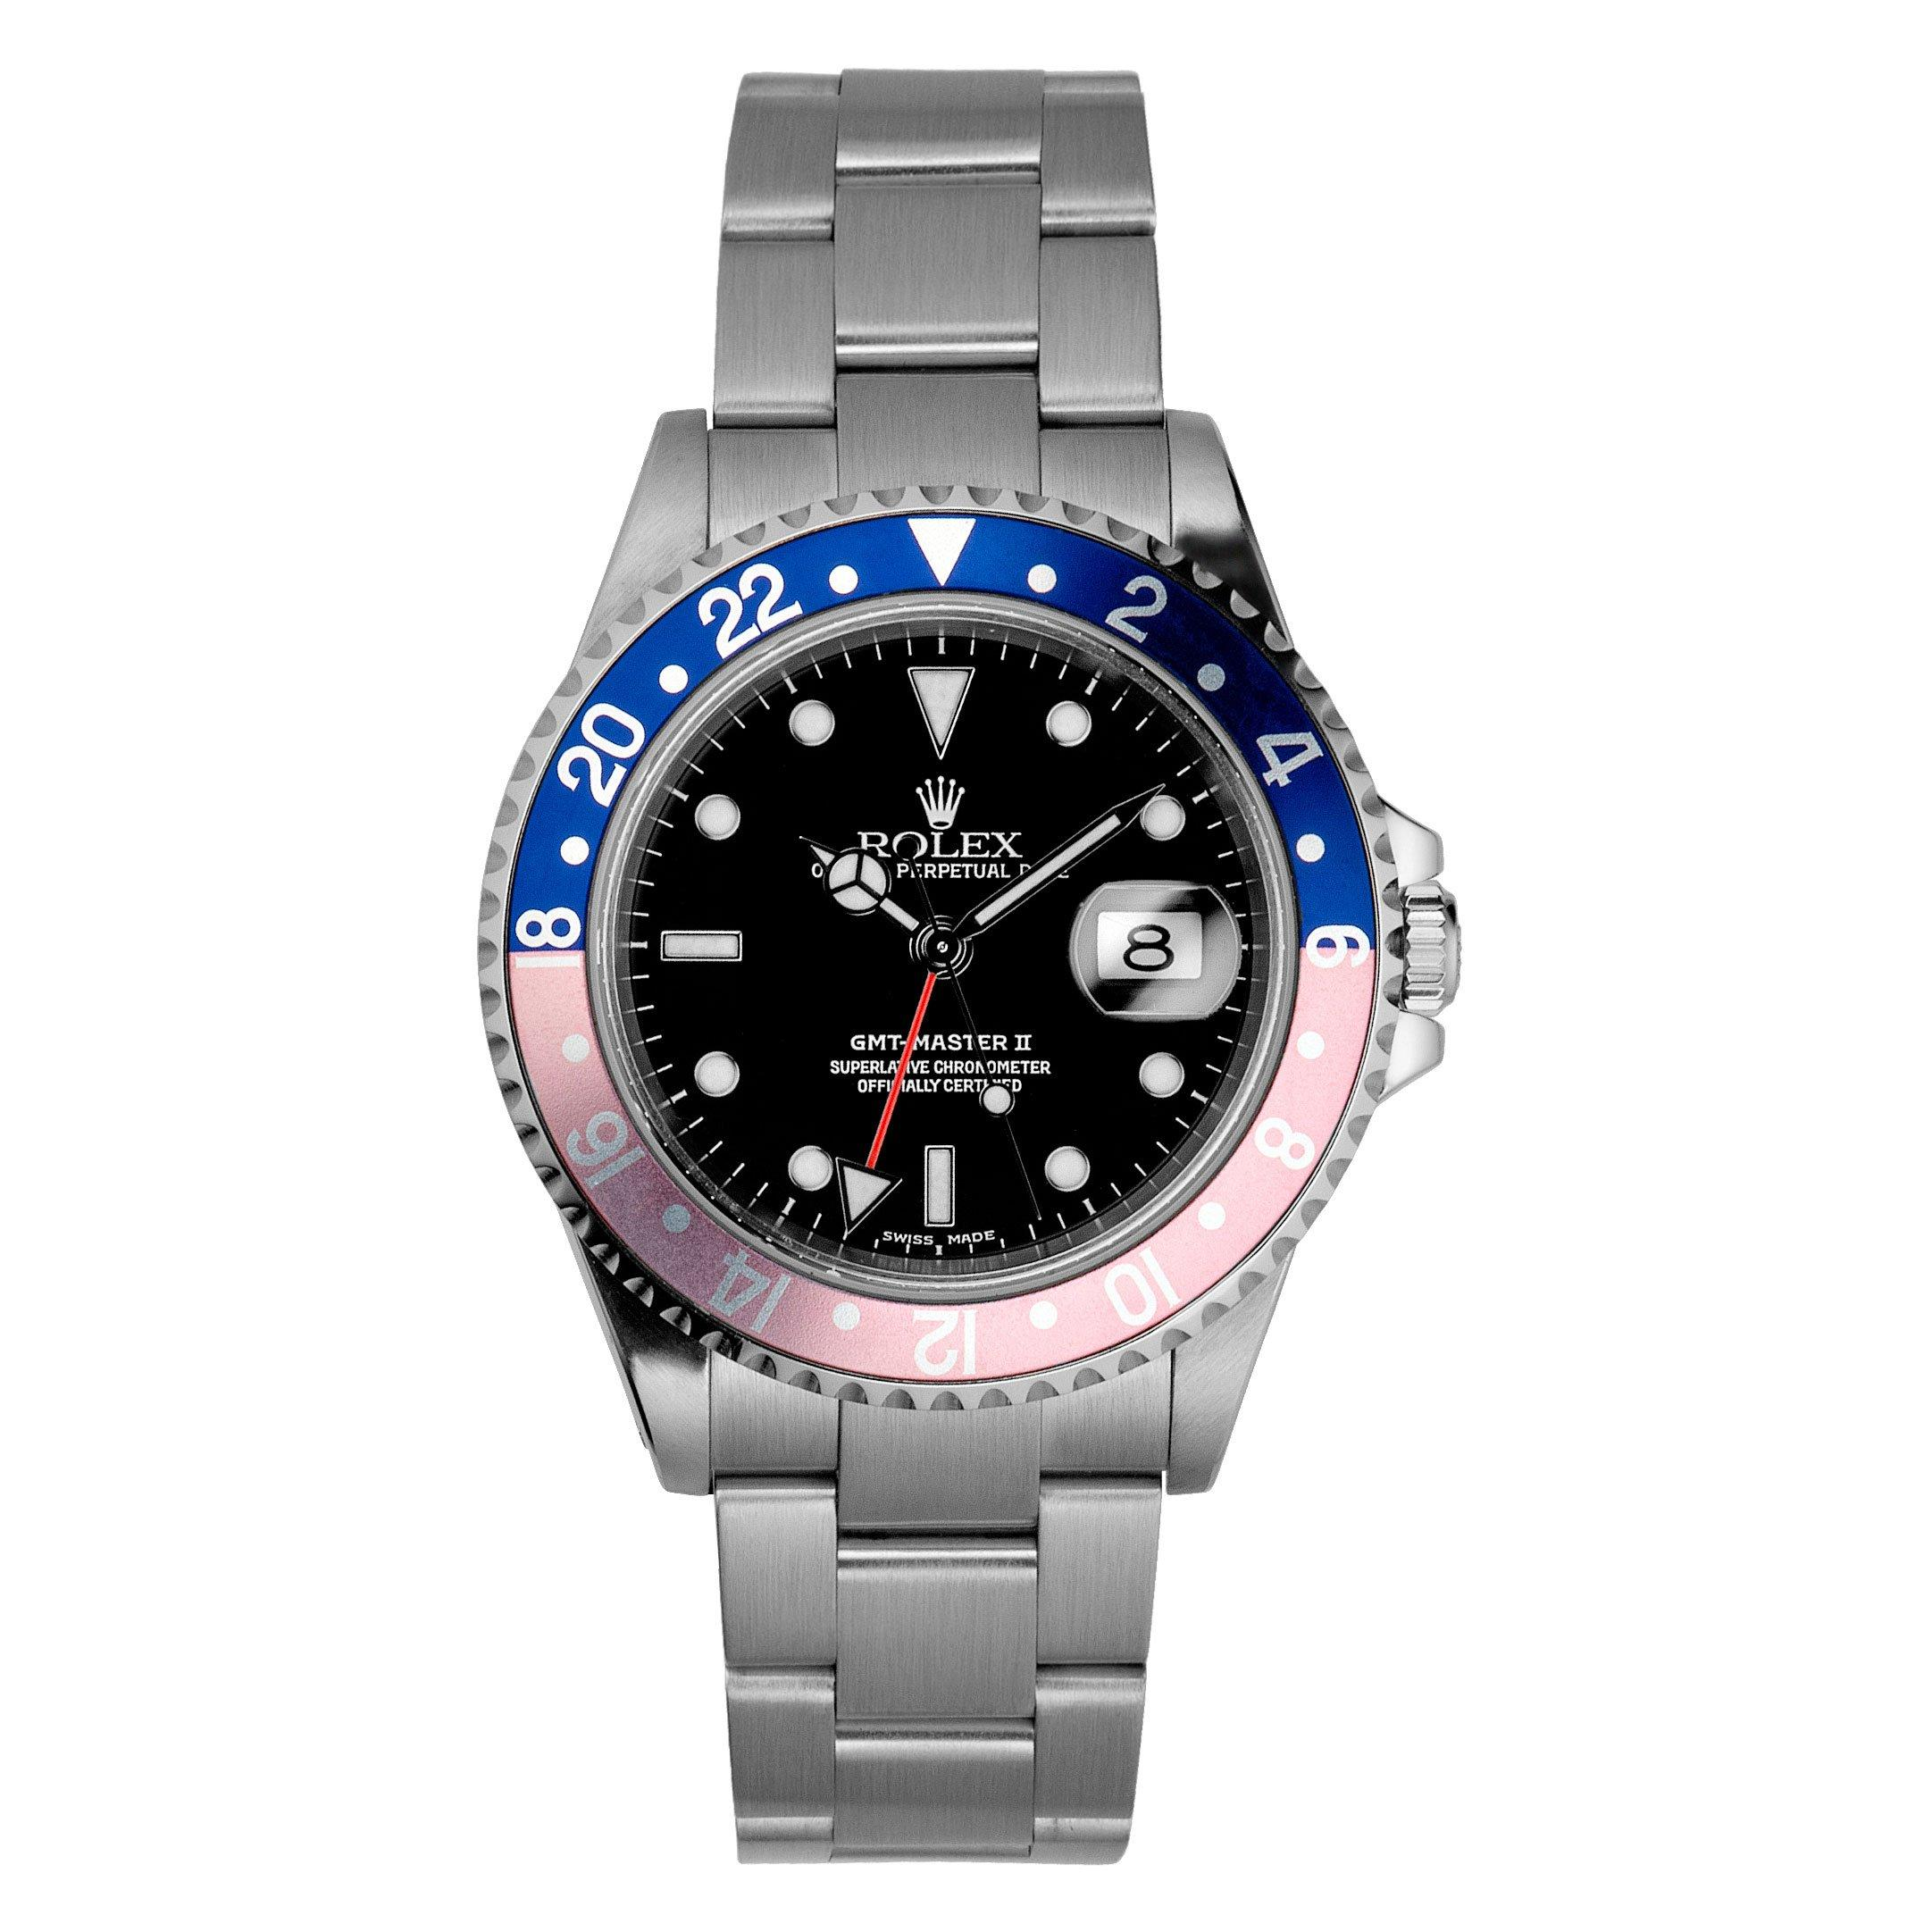 Rolex Pre-Owned GMT Master II Automatic Men's Watch